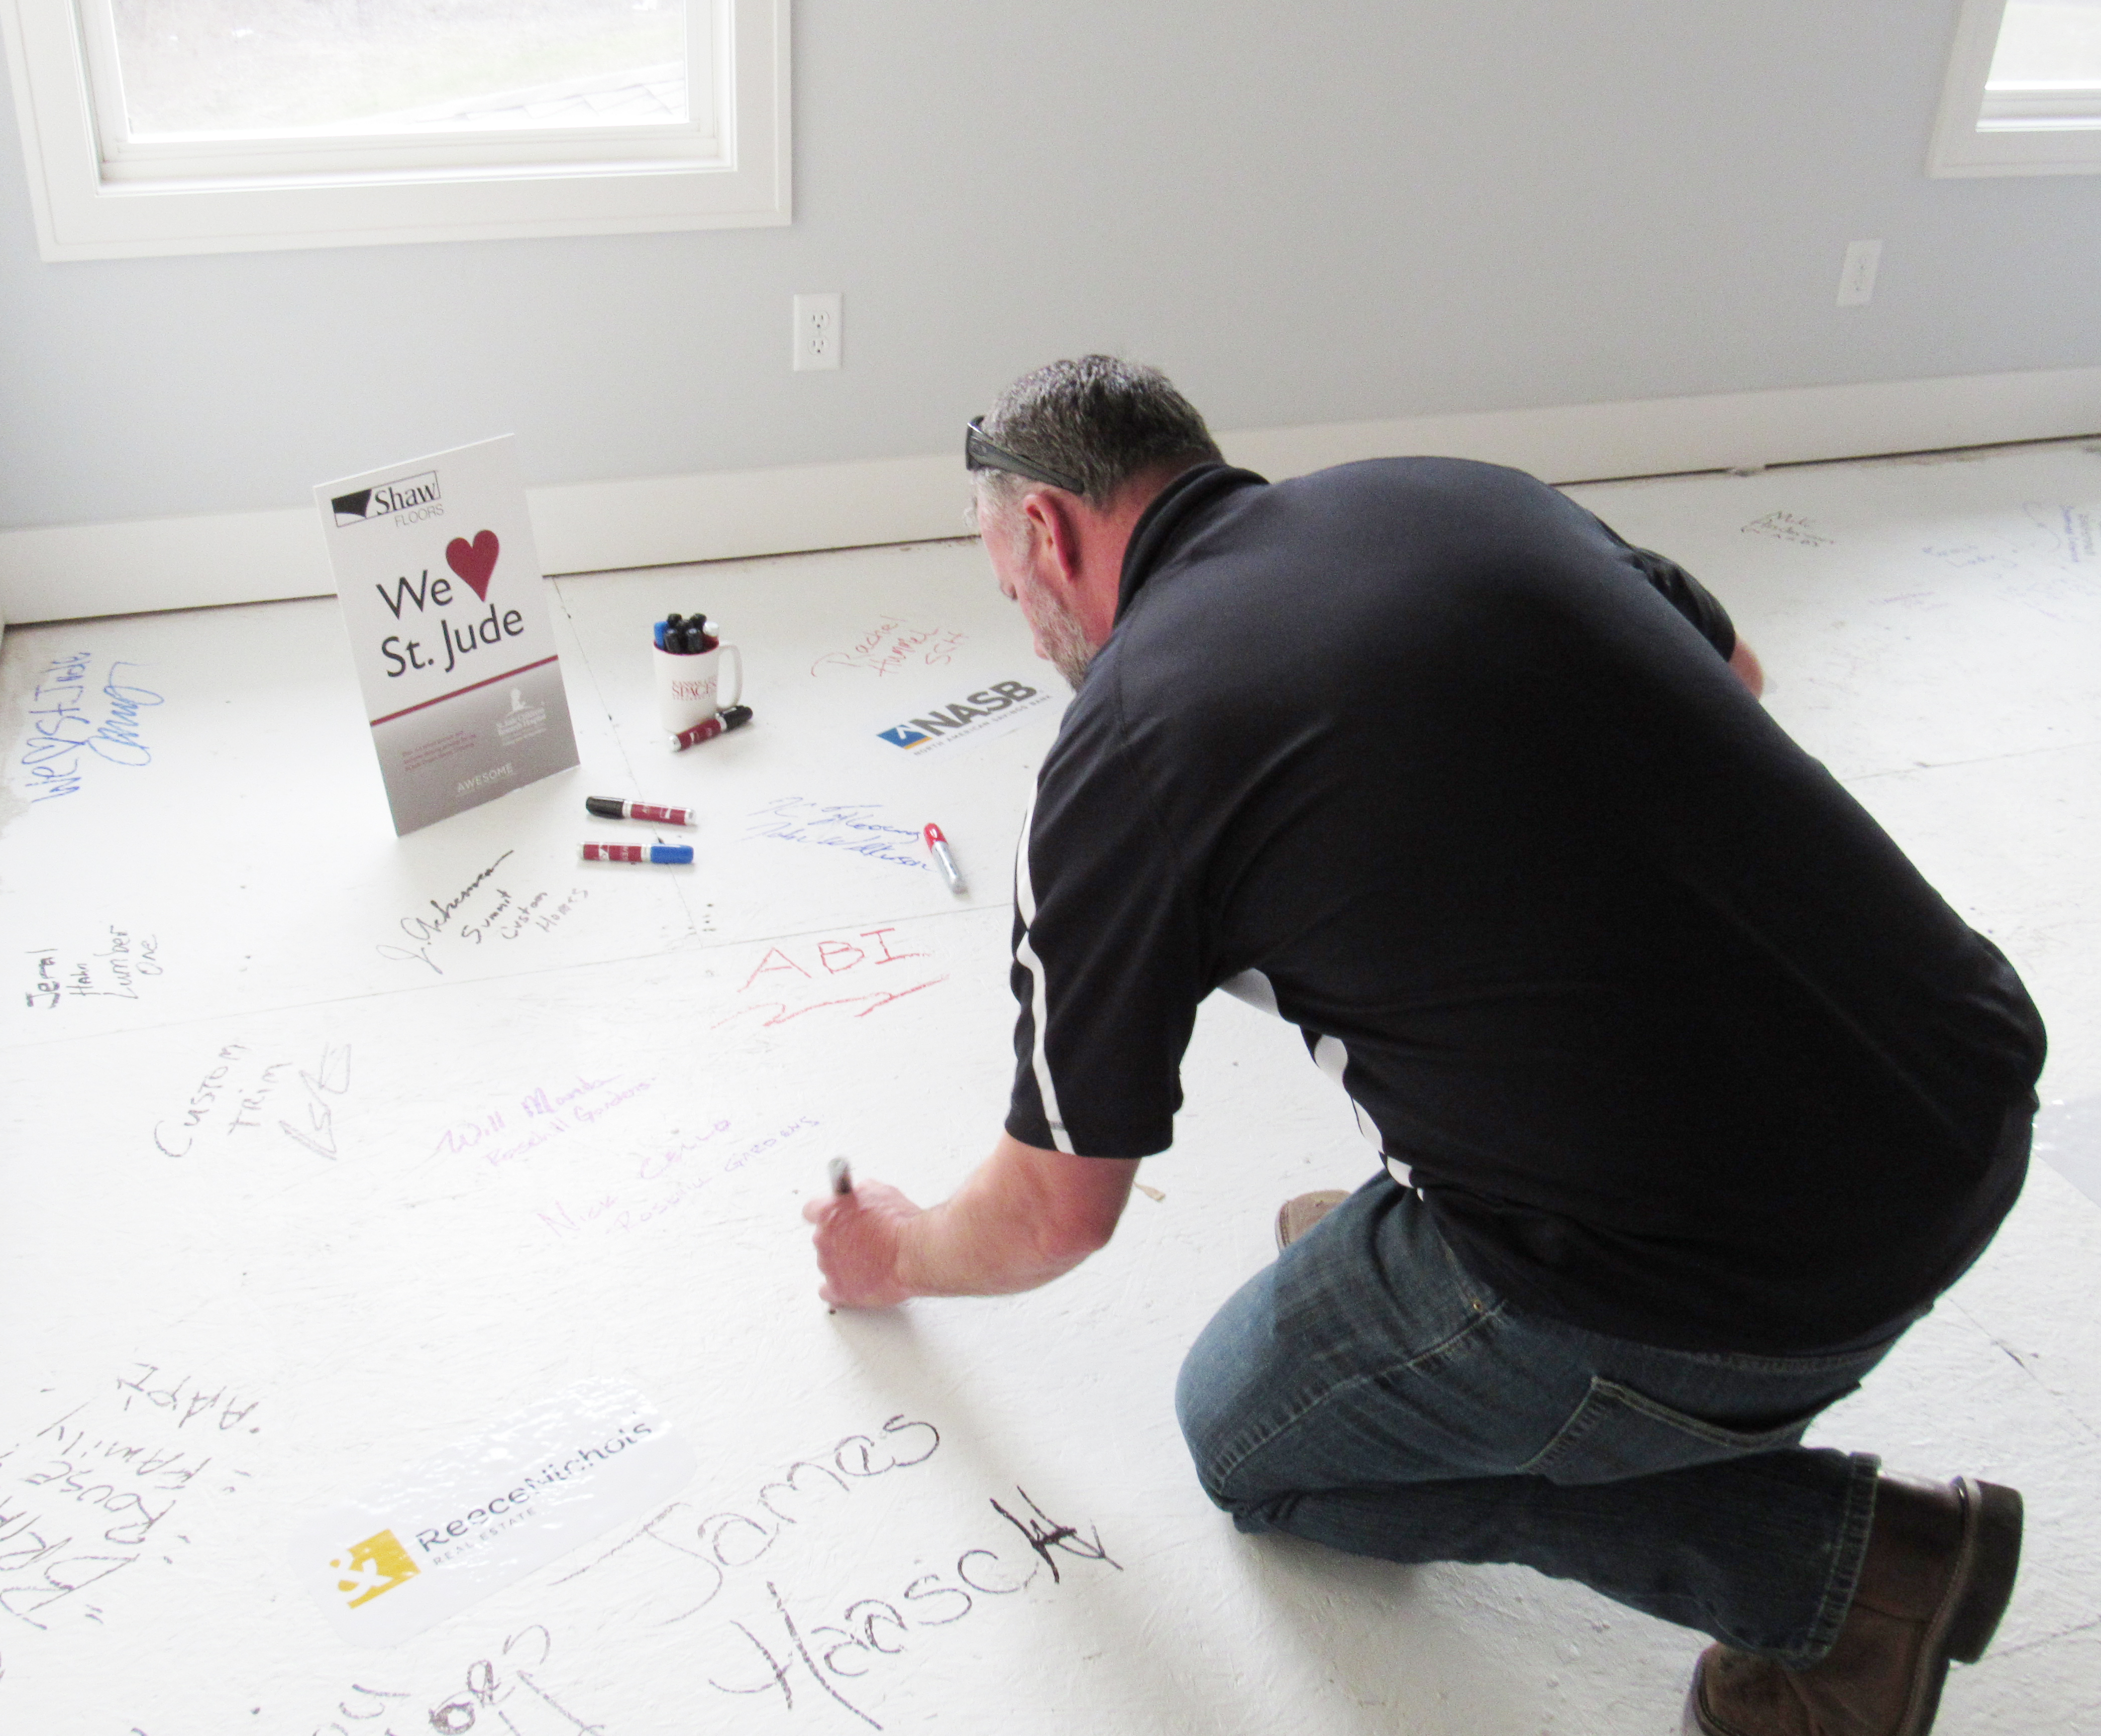 Sales Manager Mike signs his name on the unfinished flooring, along with a collection of other names already written